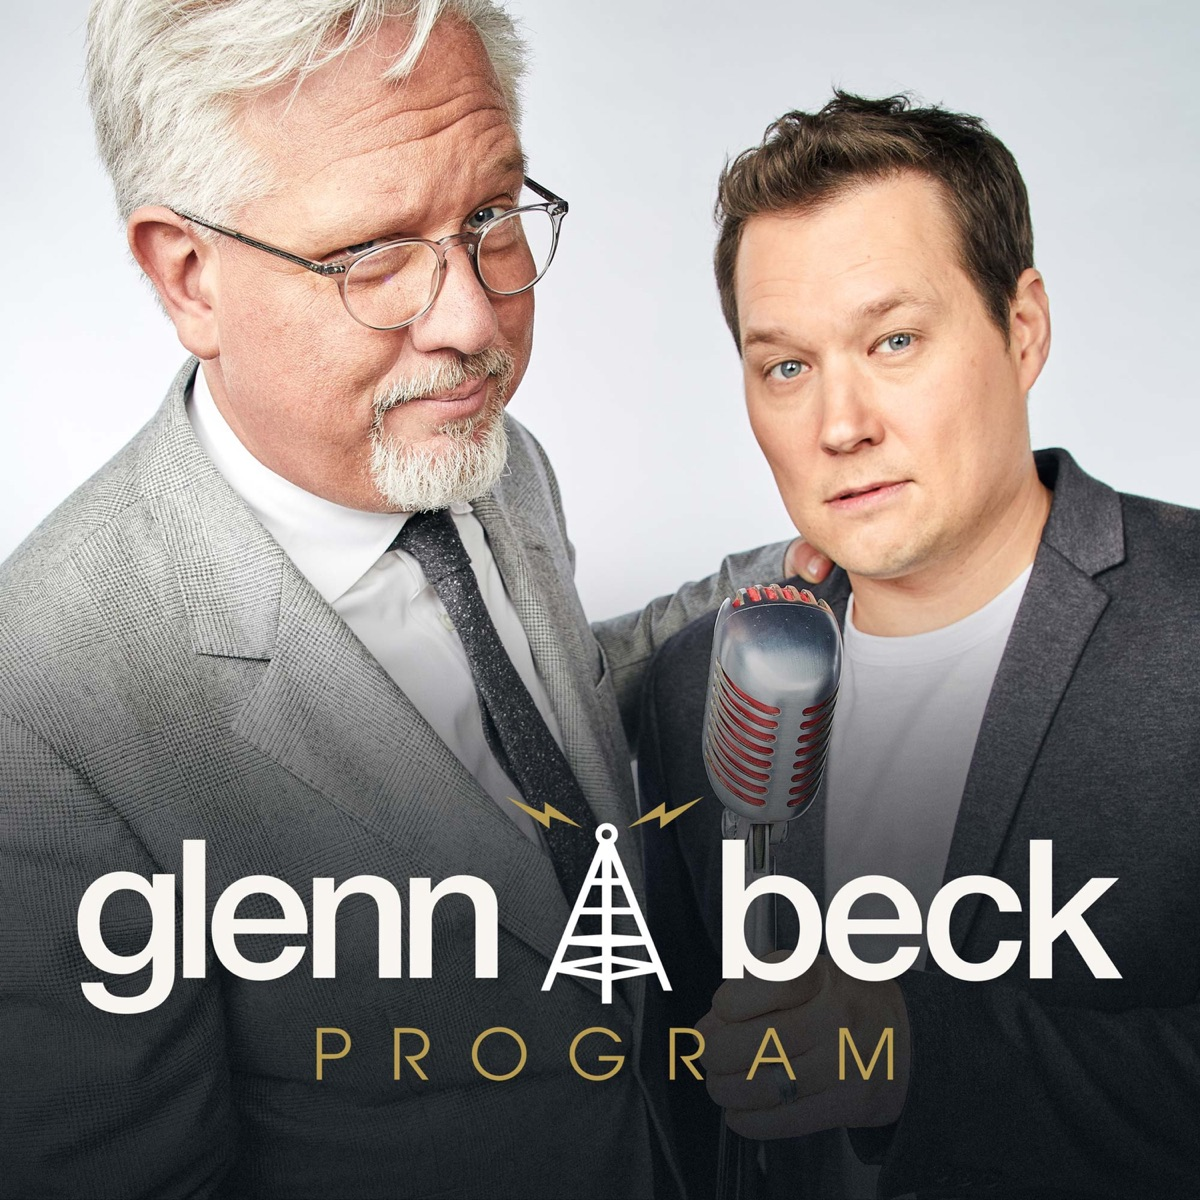 How Rush Limbaugh 'Spawned' Glenn Beck | Guest: Christopher Rufo | 2/18/21